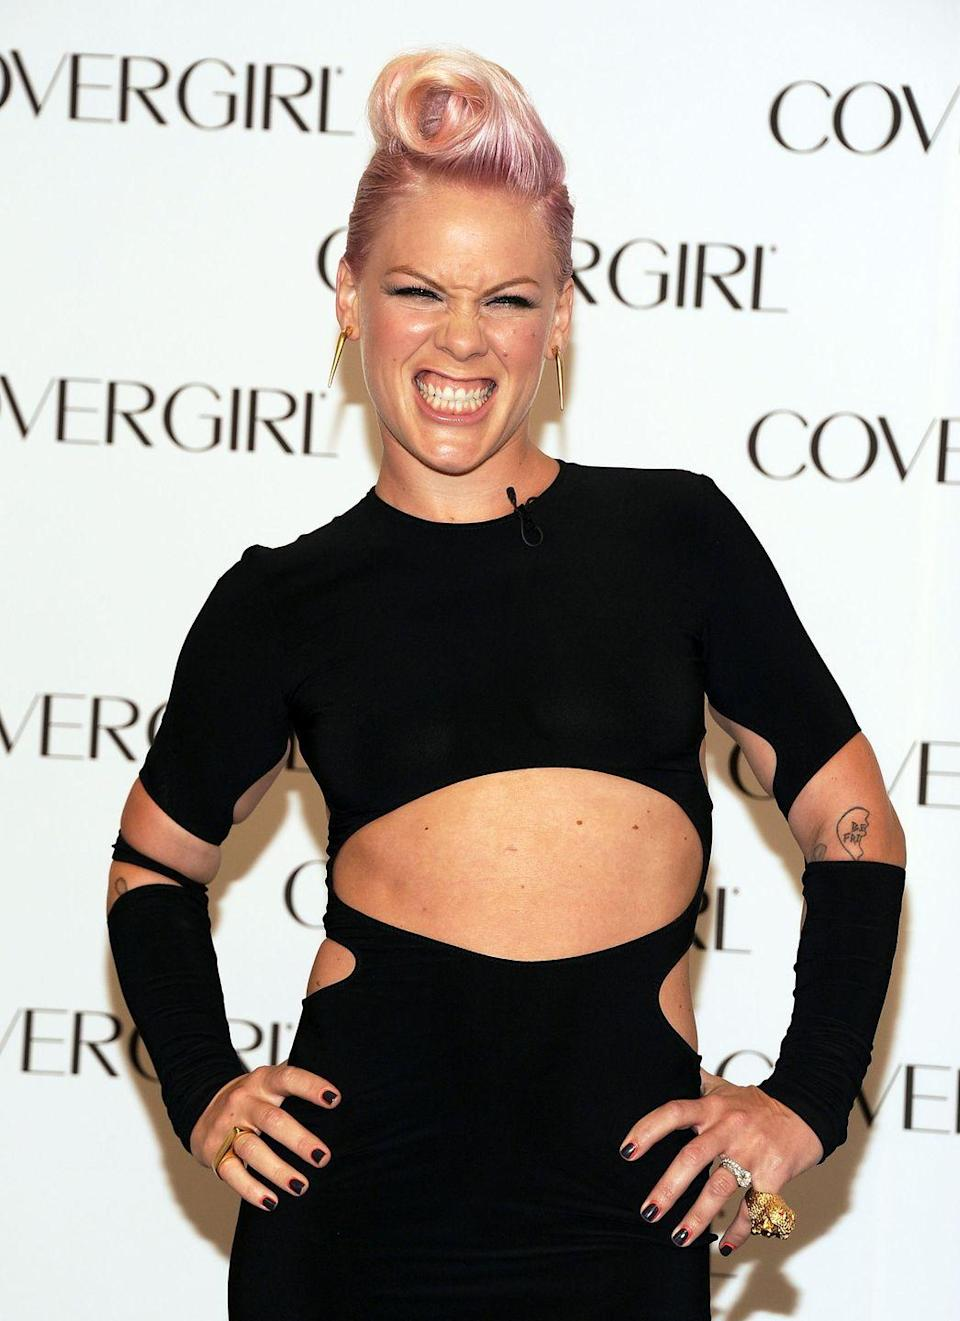 "<p><strong>Born:</strong> Alecia Beth Moore</p><p>The singer <a href=""https://www.livexlive.com/blog/2019/04/30/unraveling-pinks-musical-dna/"" rel=""nofollow noopener"" target=""_blank"" data-ylk=""slk:took her stage name"" class=""link rapid-noclick-resp"">took her stage name</a> from Steve Buscemi's character Mr. Pink in <em>Reservoir Dogs</em>. She recalled to <em>Q Magazine</em>, ""I actually ran into Steve Buscemi on the street in New York before my first album came out. I had these big f---ing Elton John glasses on, pink hair and carried a Pink Panther toy. I went 'Steve! Mr Pink! I'm Pink! Because of you! I'm going to have an album and you're going to know who I am!' And he was like 'What the f--k, lady?' and just ran away from me. I've never met him since.""</p>"